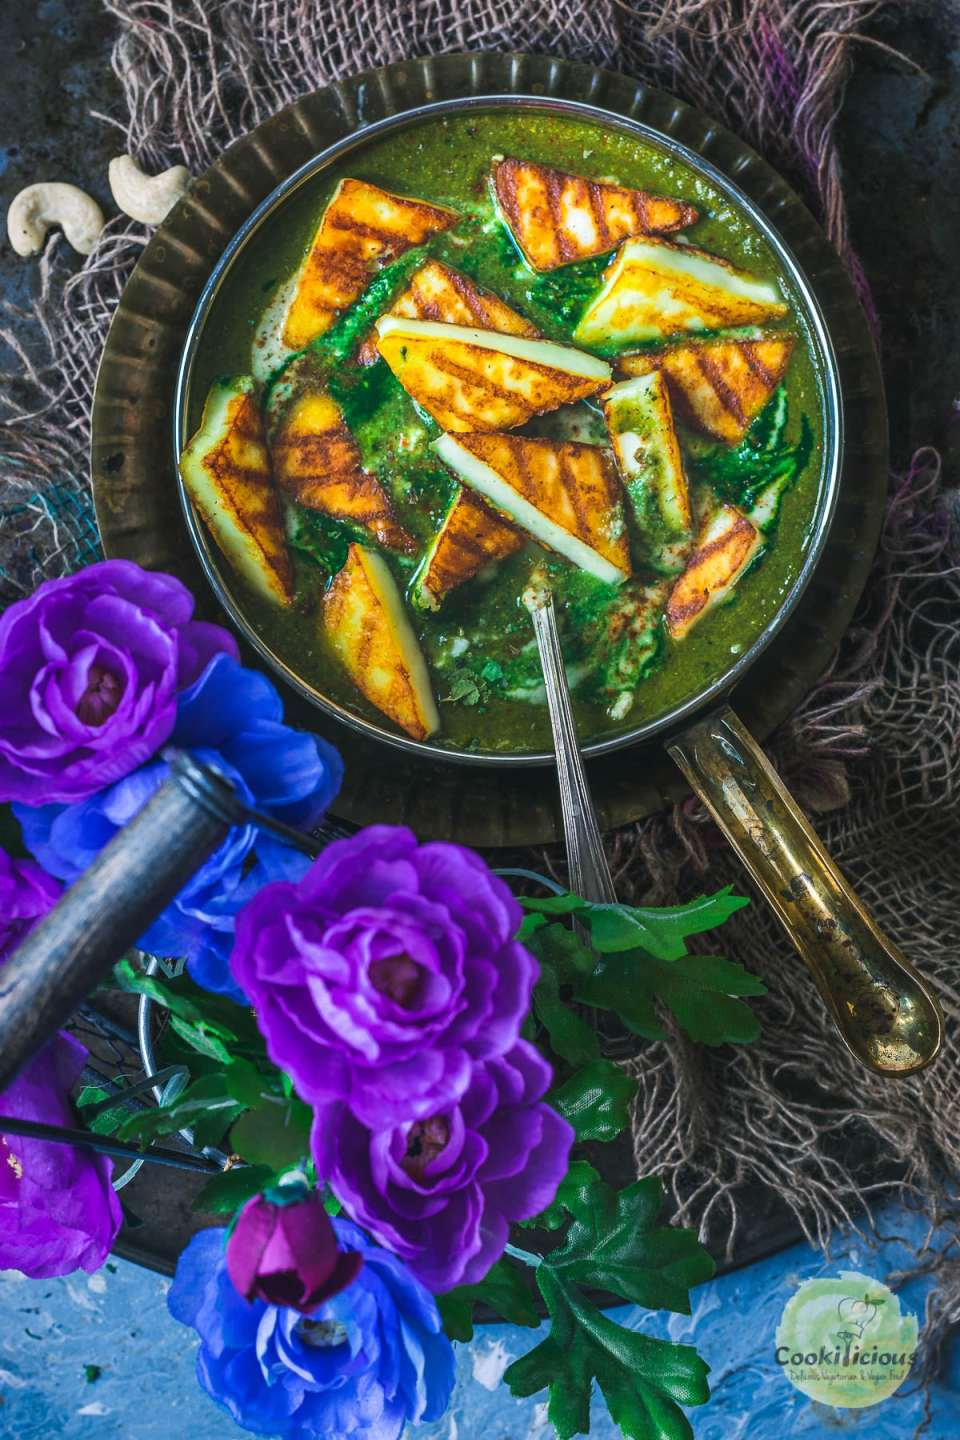 Restaurant Style Palak Paneer served in a bowl with flowers on the side